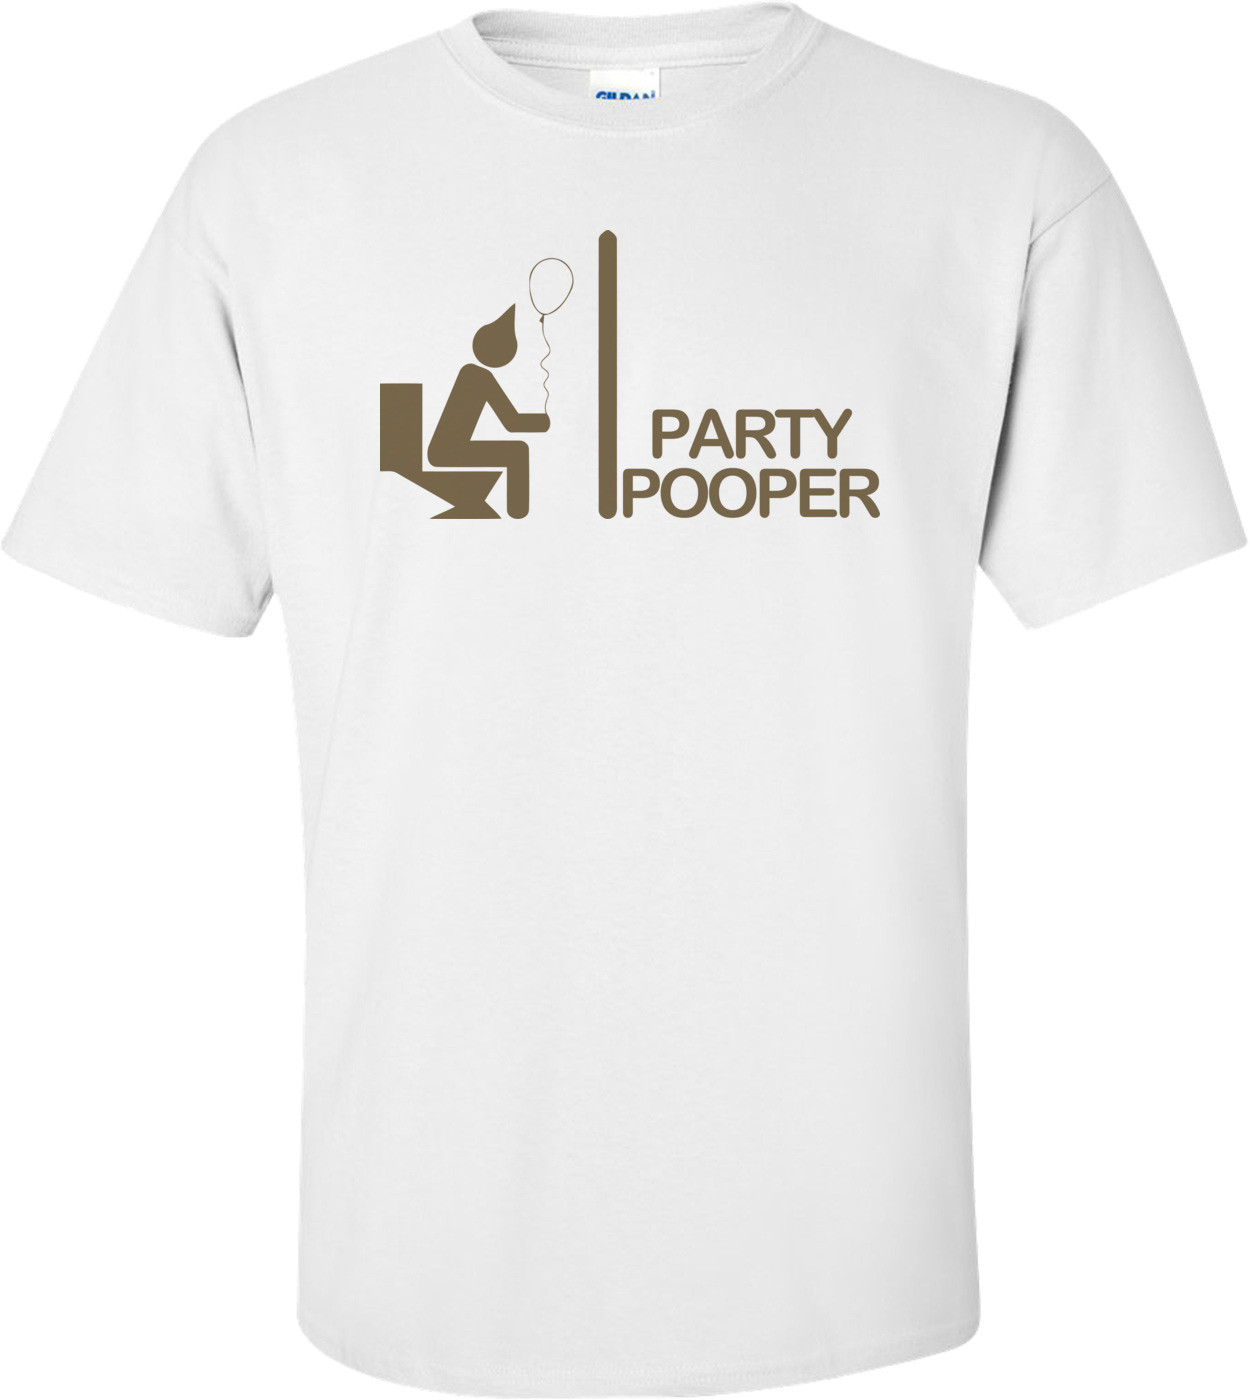 Party Pooper Funny